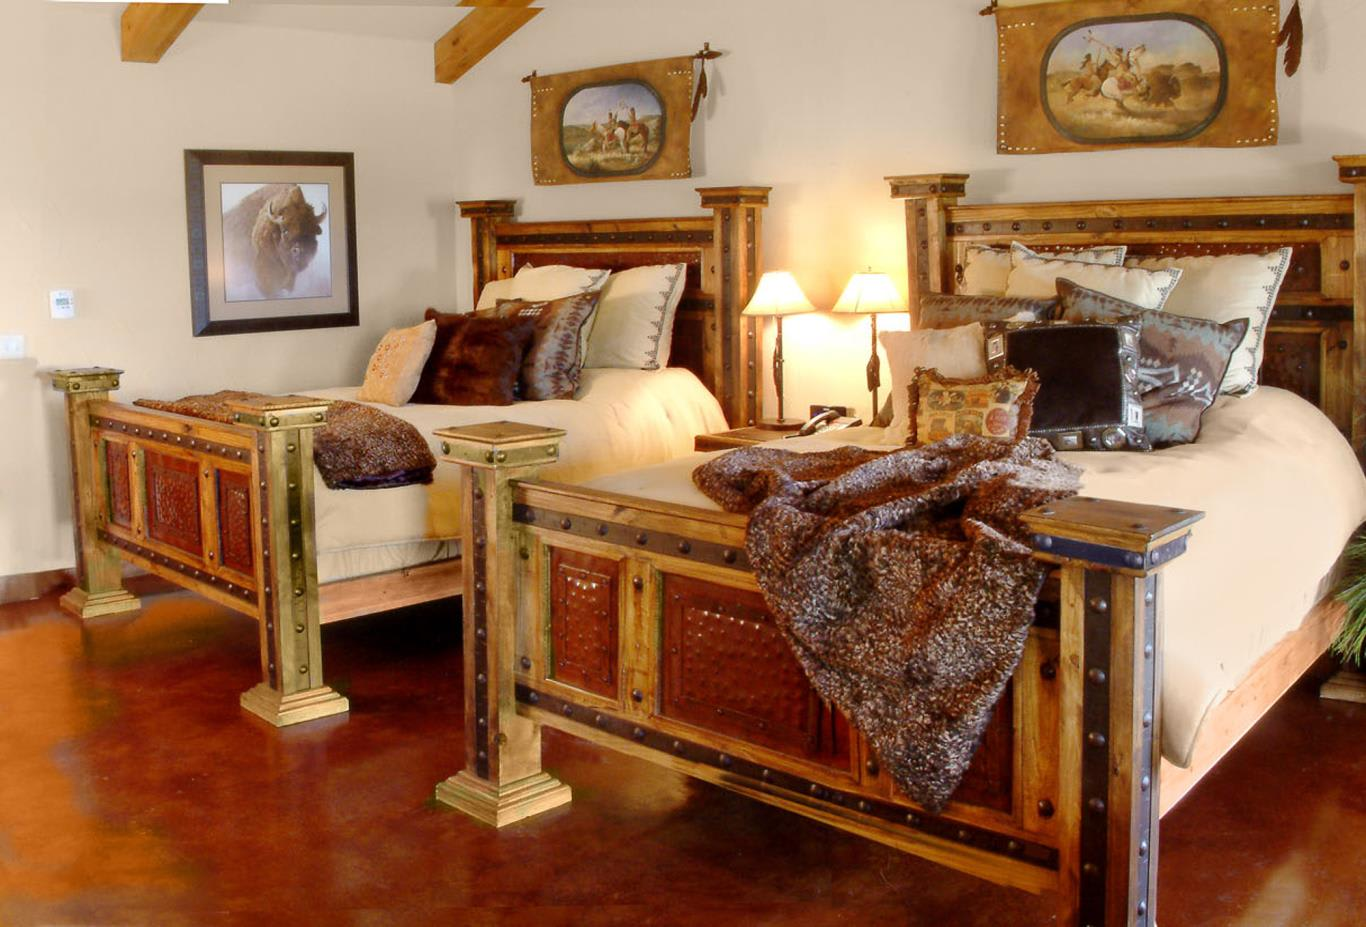 Cabin Suite beds